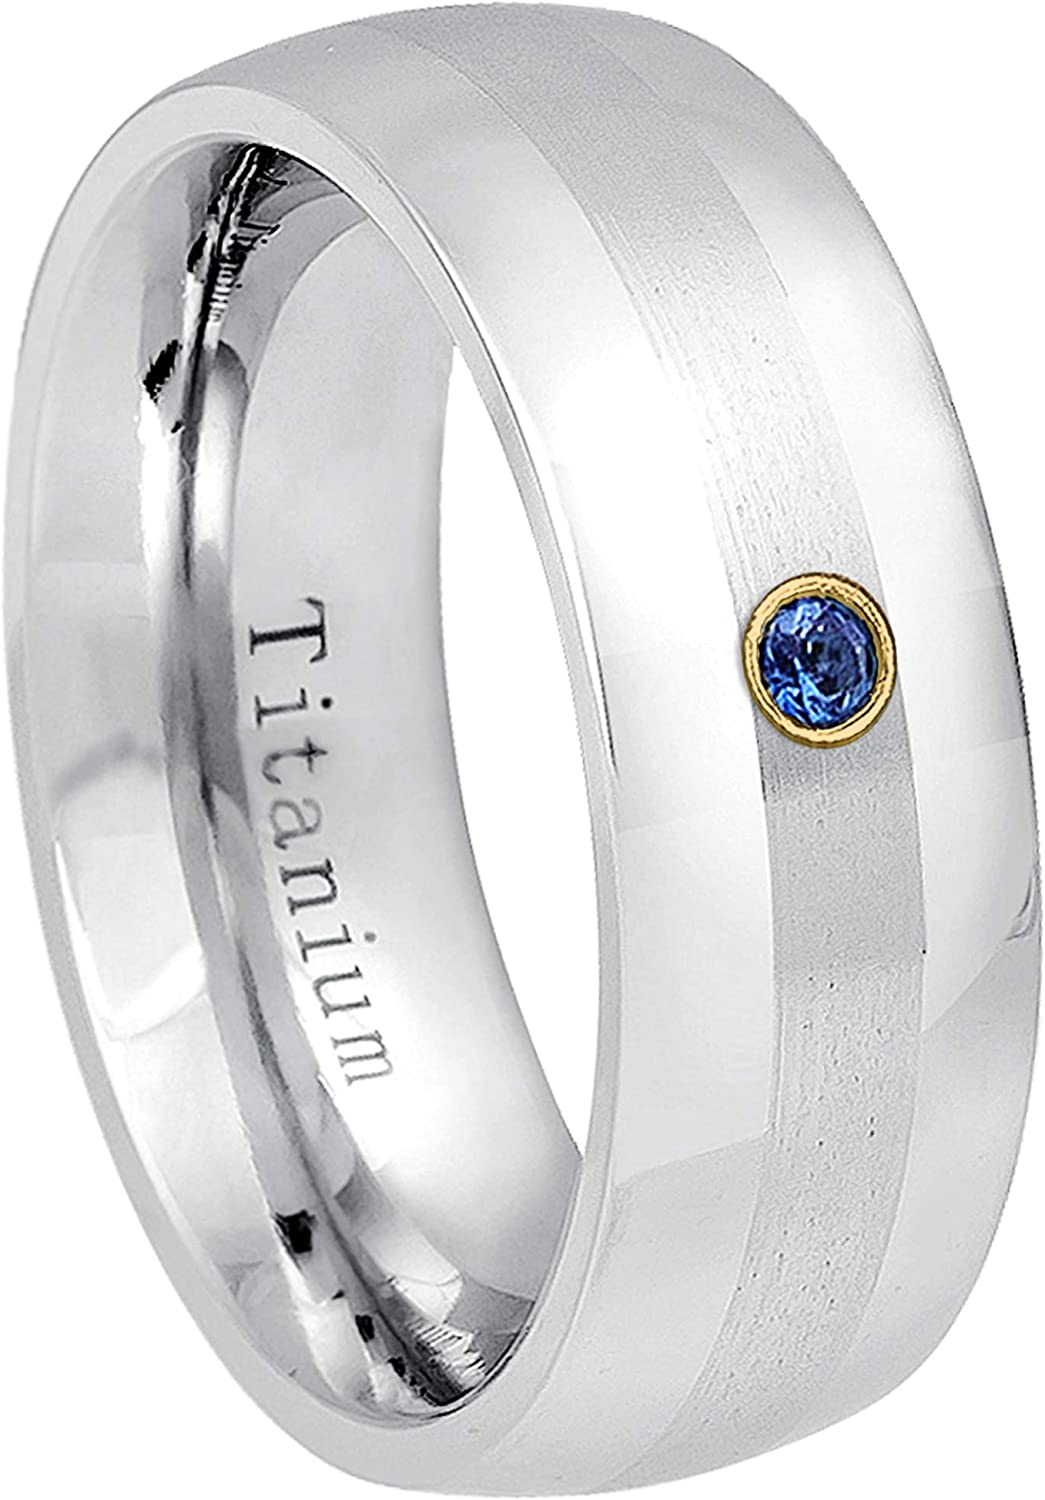 0.07ct Blue Sapphire Solitaire Titanium Ring 8MM Polished Dome Brushed Center Finish Comfort Fit White Wedding Band September Birthstone Ring